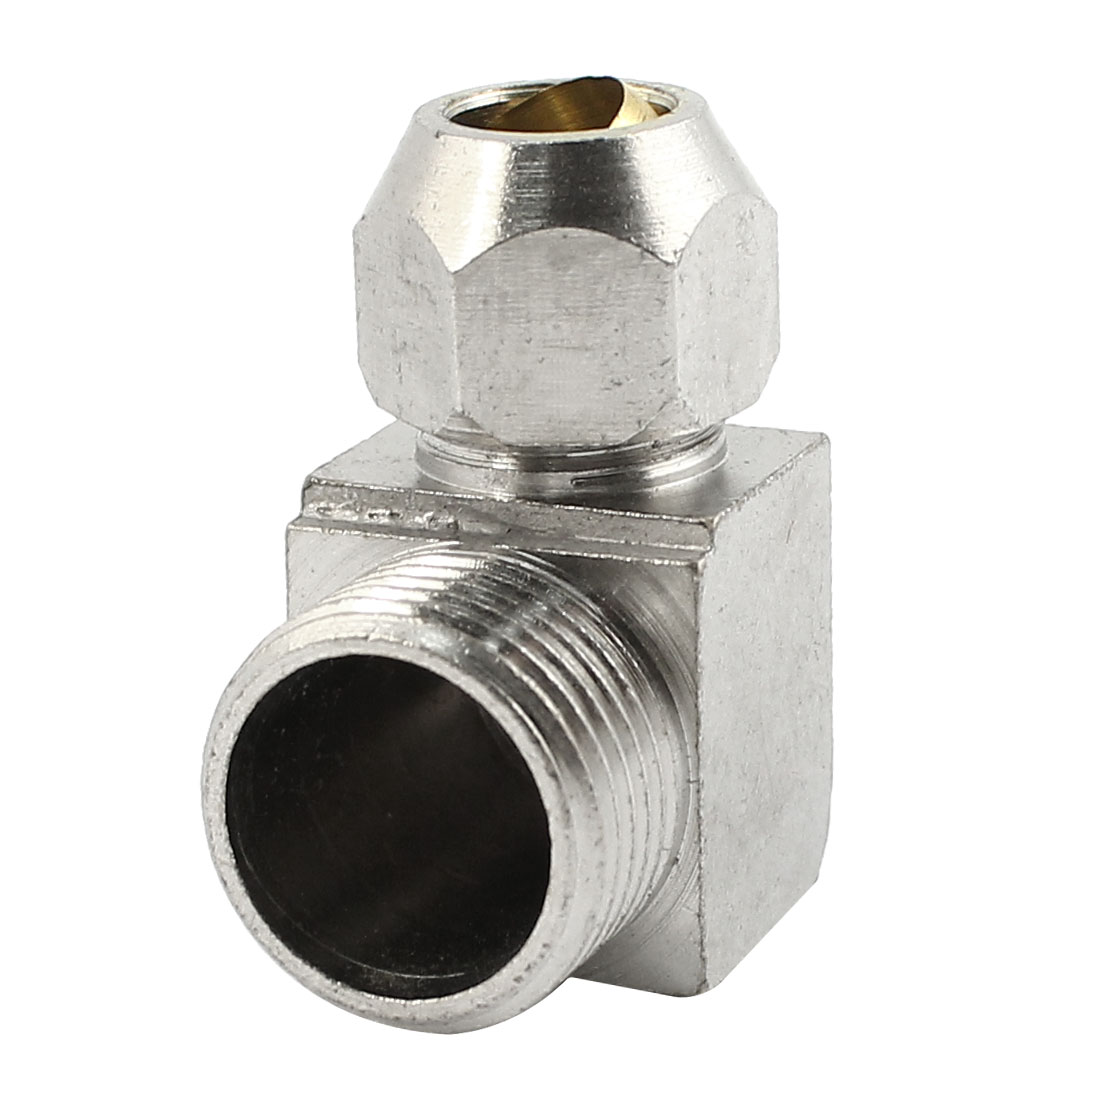 3/8PT Male Threaded L-Shaped Quick Coupling Coupler Connector Silver Tone for 8mm Dia Air Pneumatic Hose